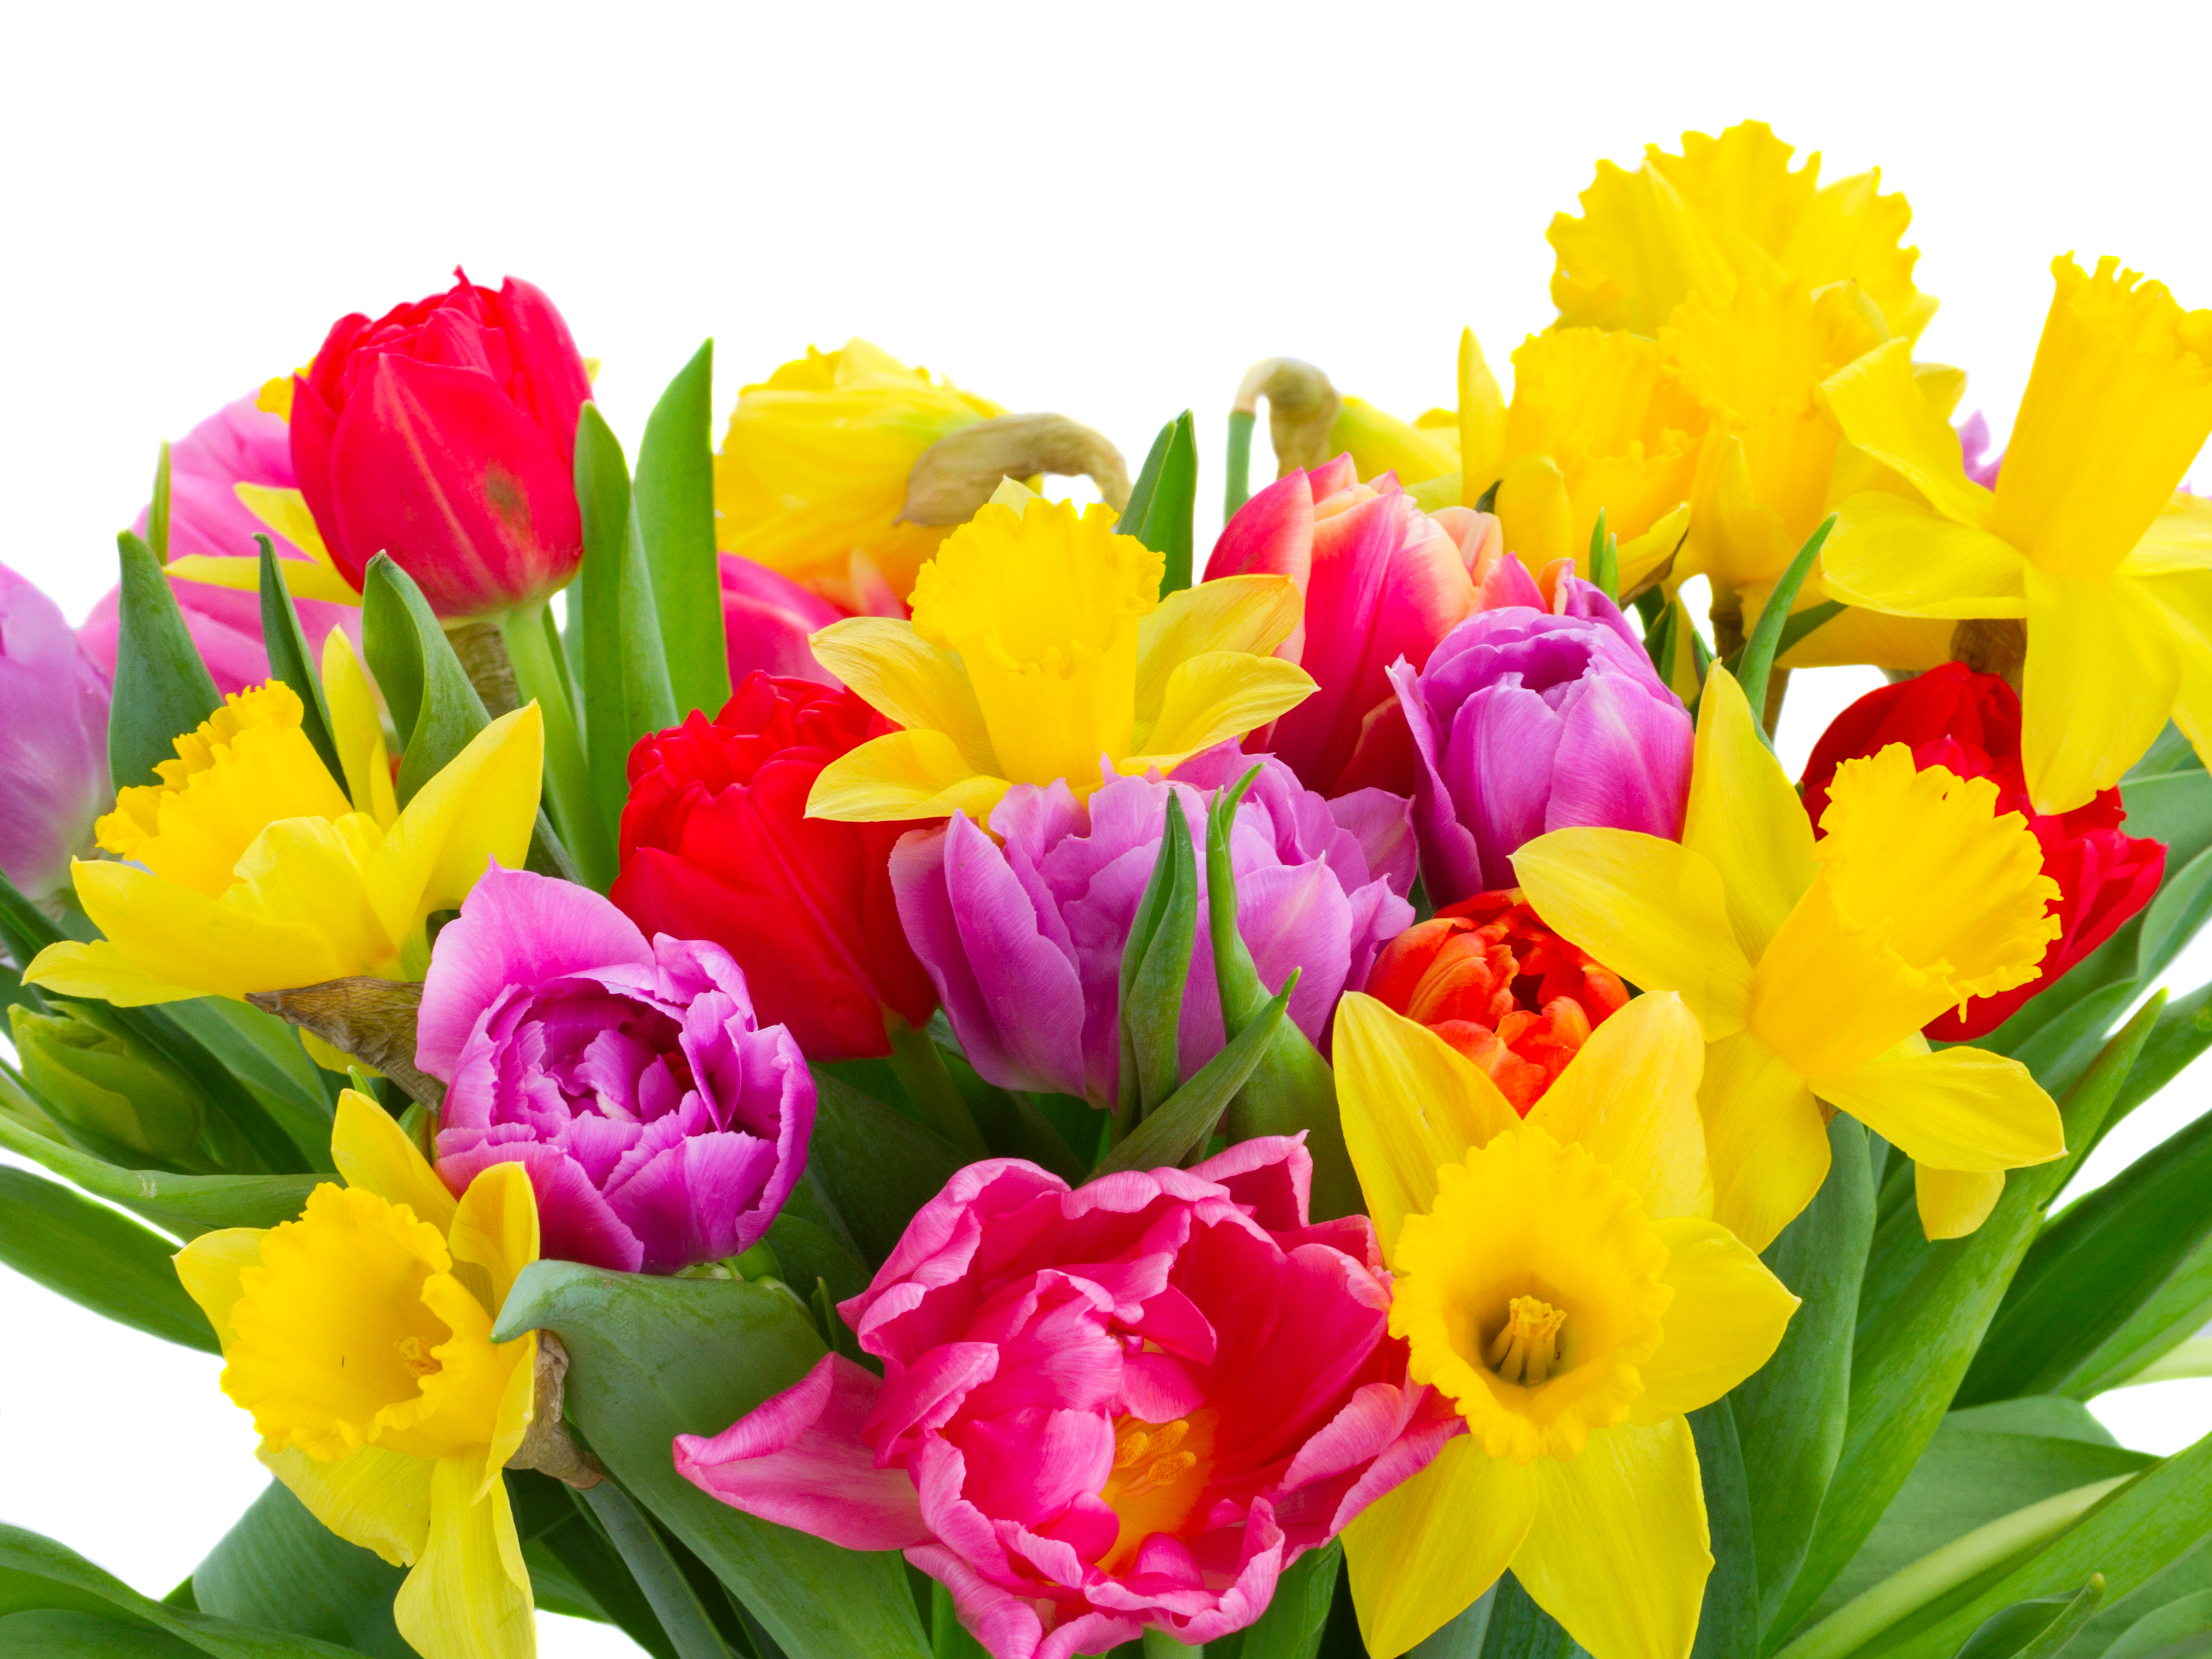 Flower 5k retina ultra hd wallpaper and background image 6000x4500 man made flower bouquet tulip daffodil yellow flower pink flower wallpaper izmirmasajfo